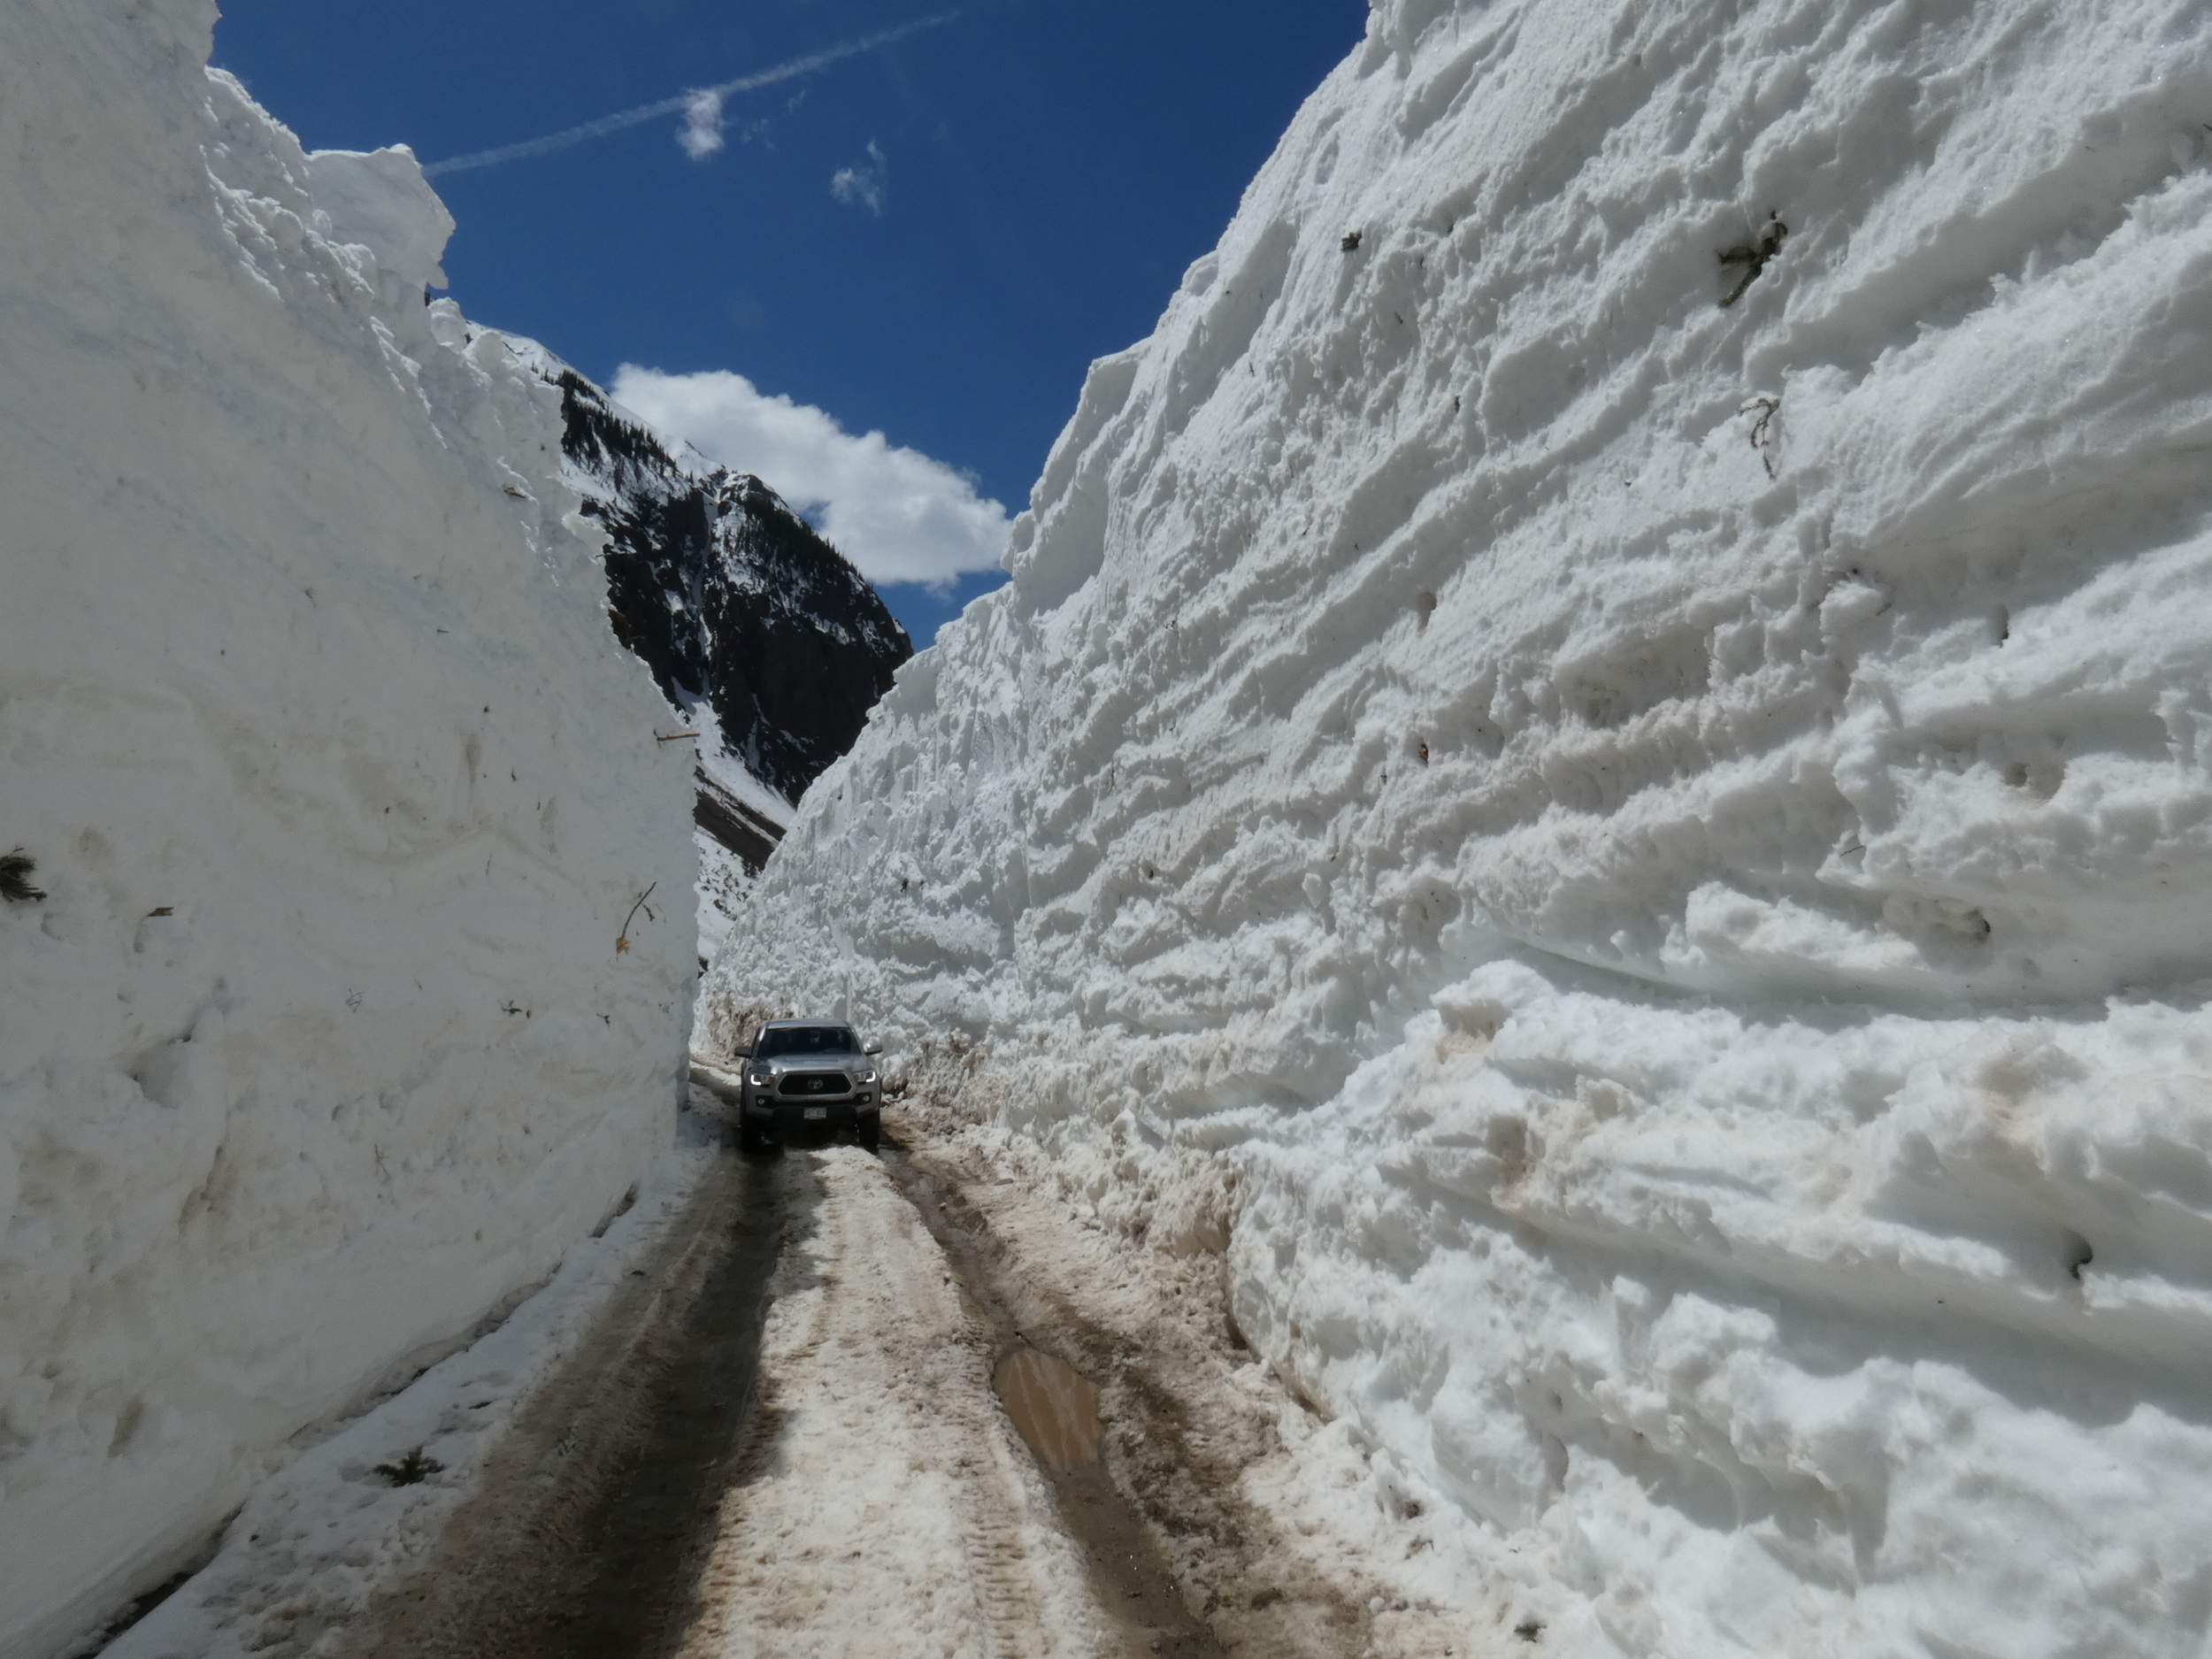 In the aftermath of avalanches, digging out will take time